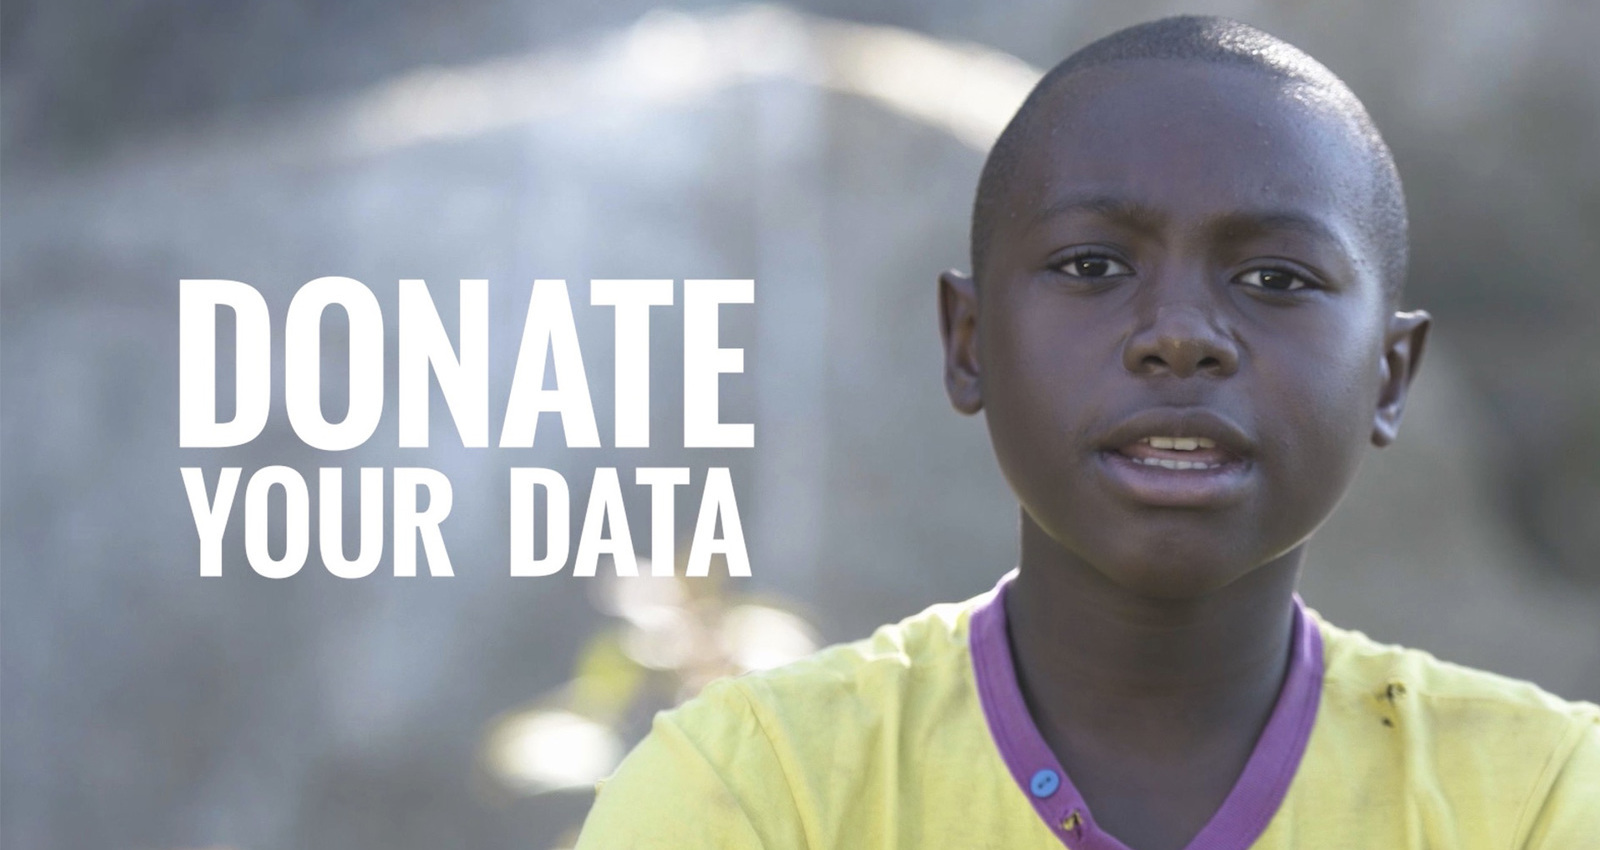 Donate your data